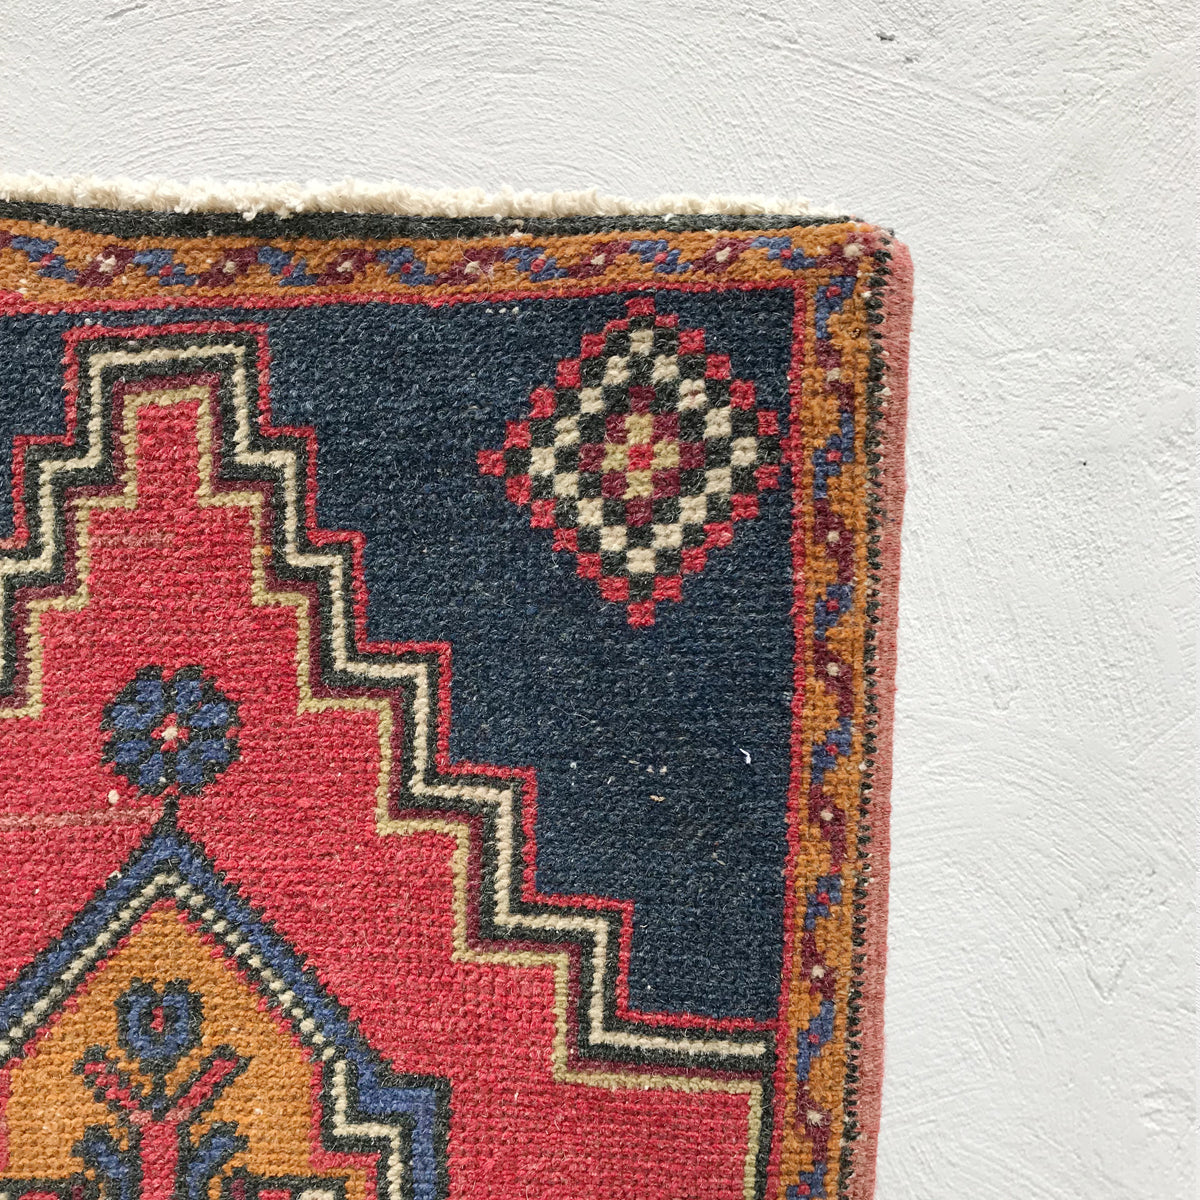 Red, white and blue...and gold! This vintage Turkish rug is great for entryways, bathrooms, kitchens and layering. 20x39 inches.